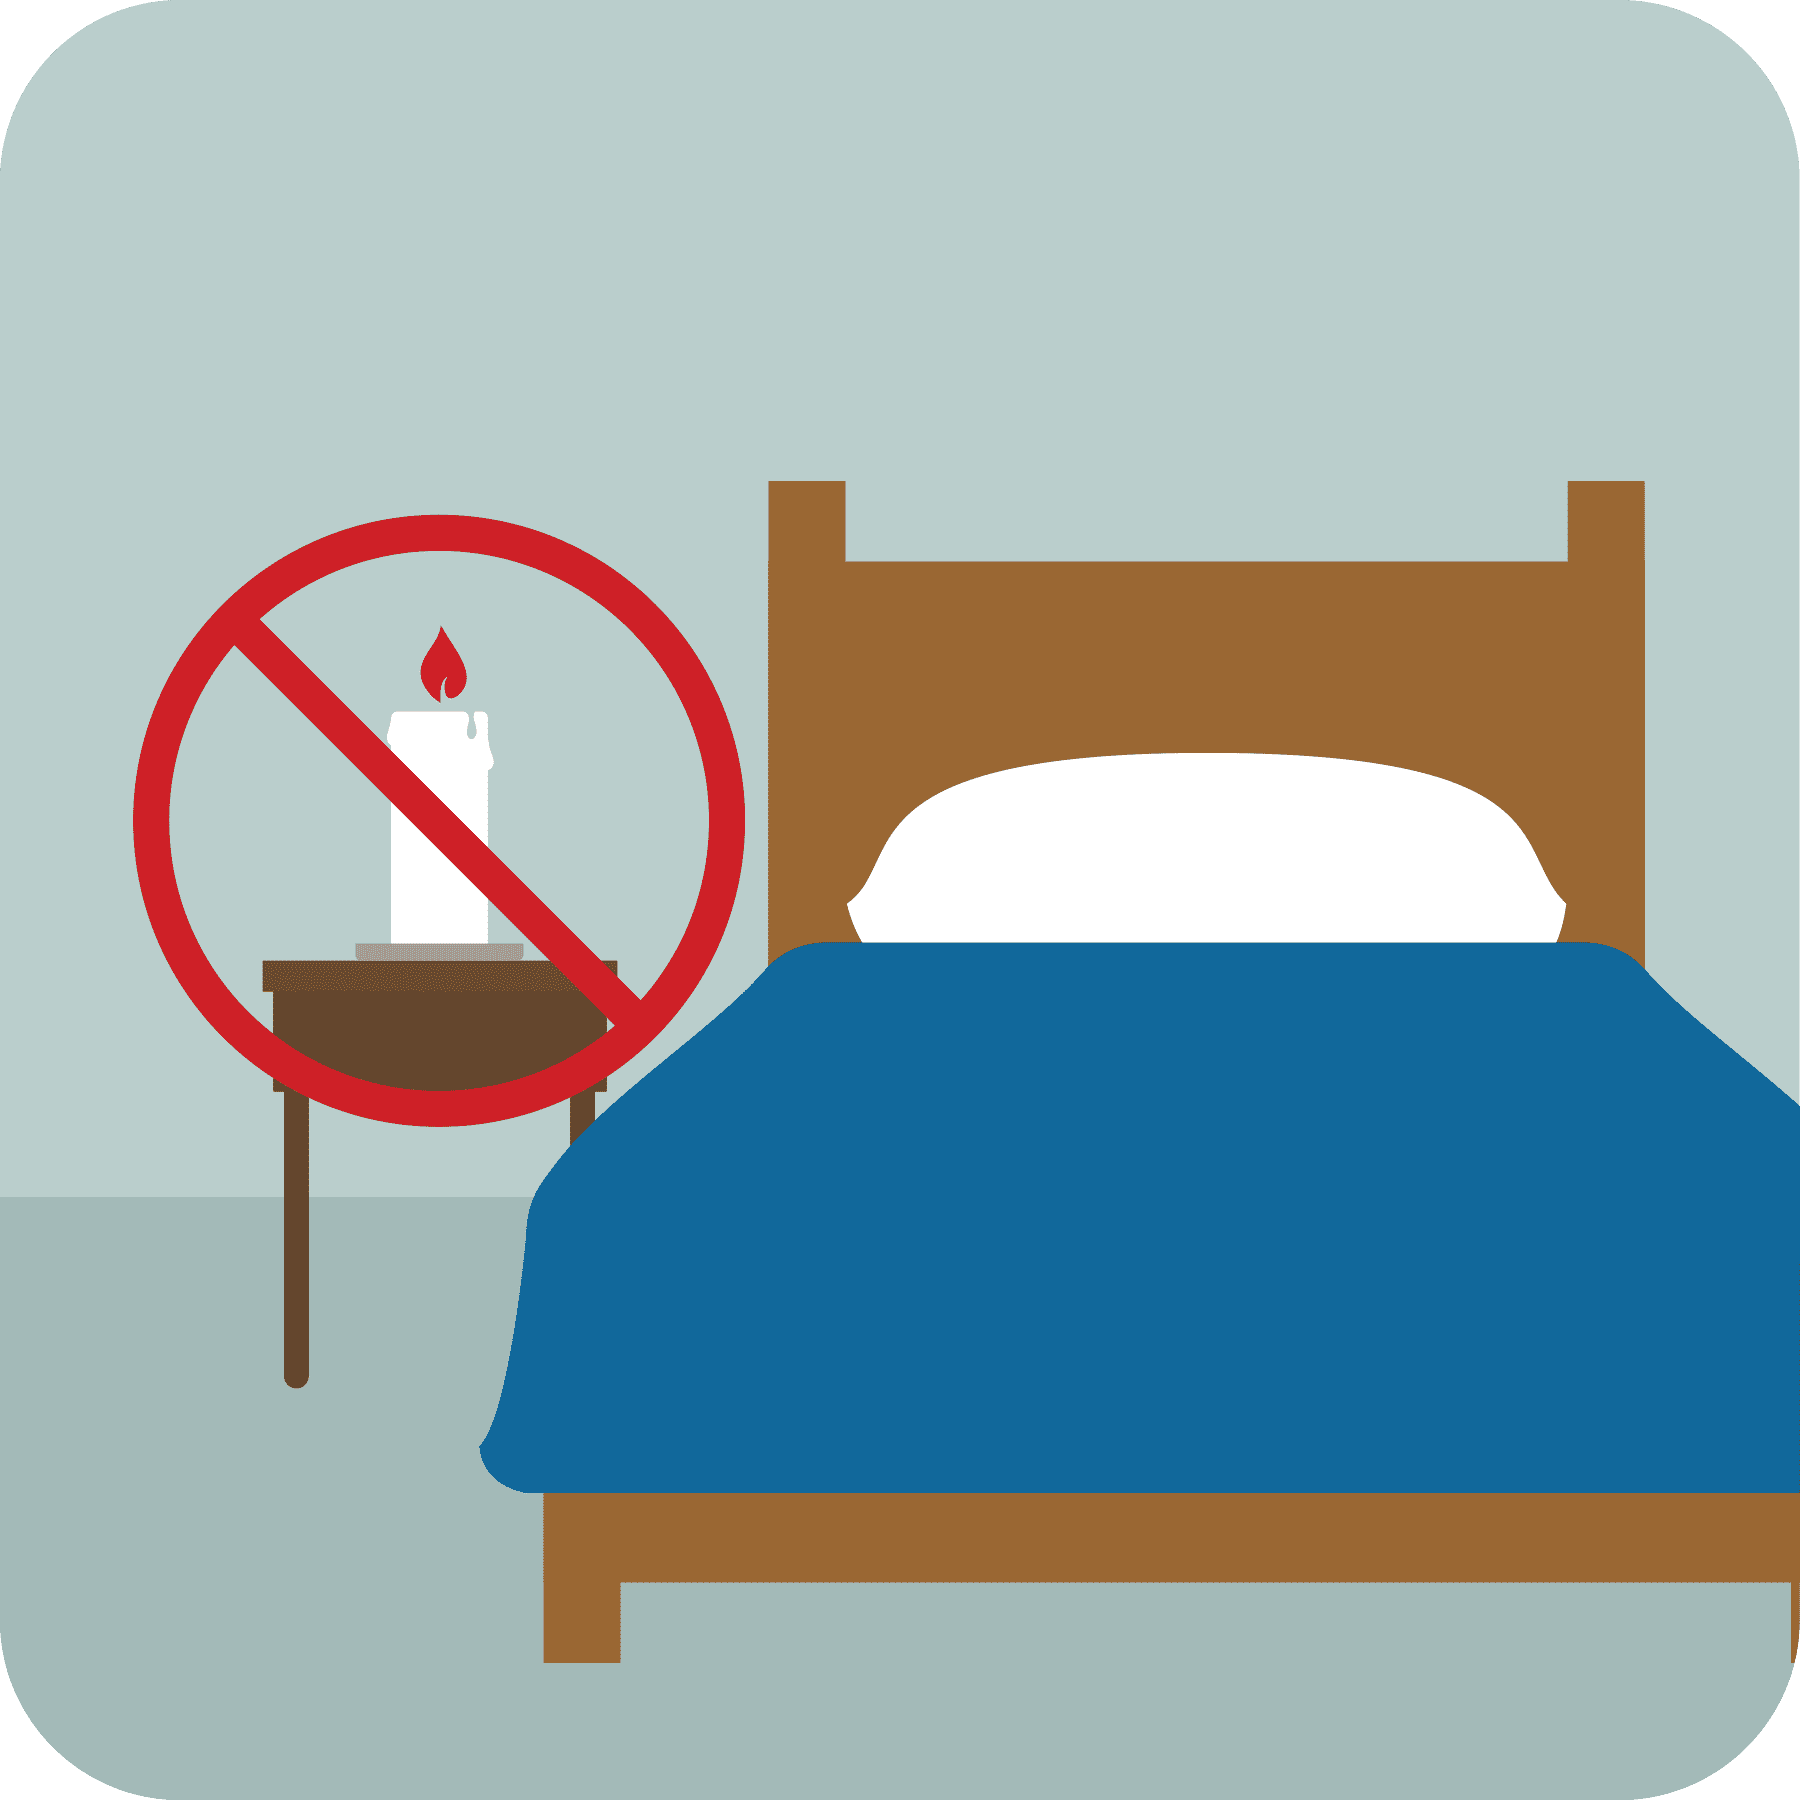 Don't use lit candles in bedrooms, bathrooms and sleeping areas.